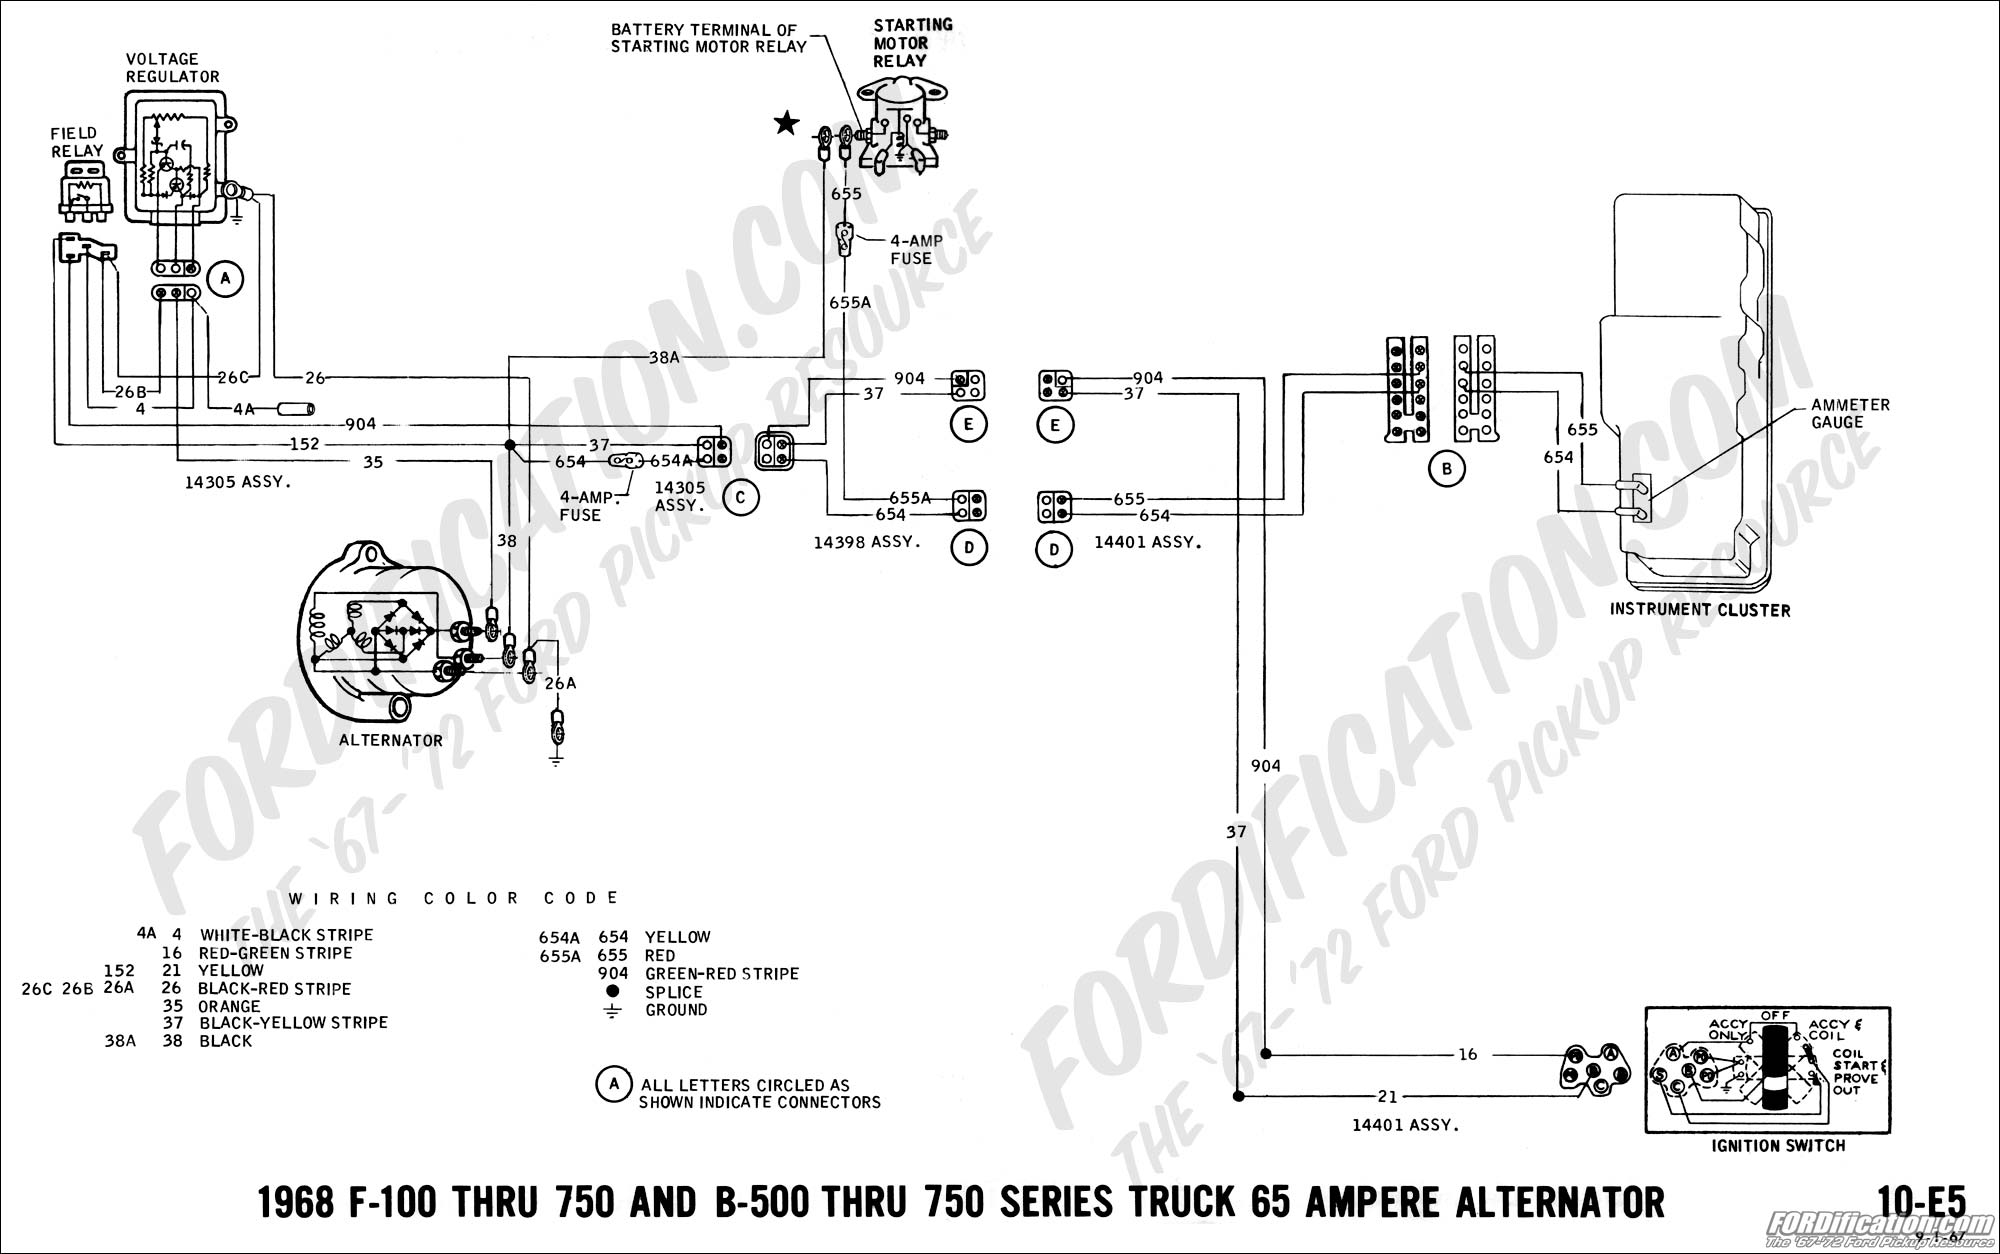 1979 ford f 250 alternator wiring diagram 1977 ford f250 alternator 1986 ford bronco ii wiring diagram 1968 ford f 250 truck dist wiring diagram 2003 ford f 250 wiring ford electronic ignition